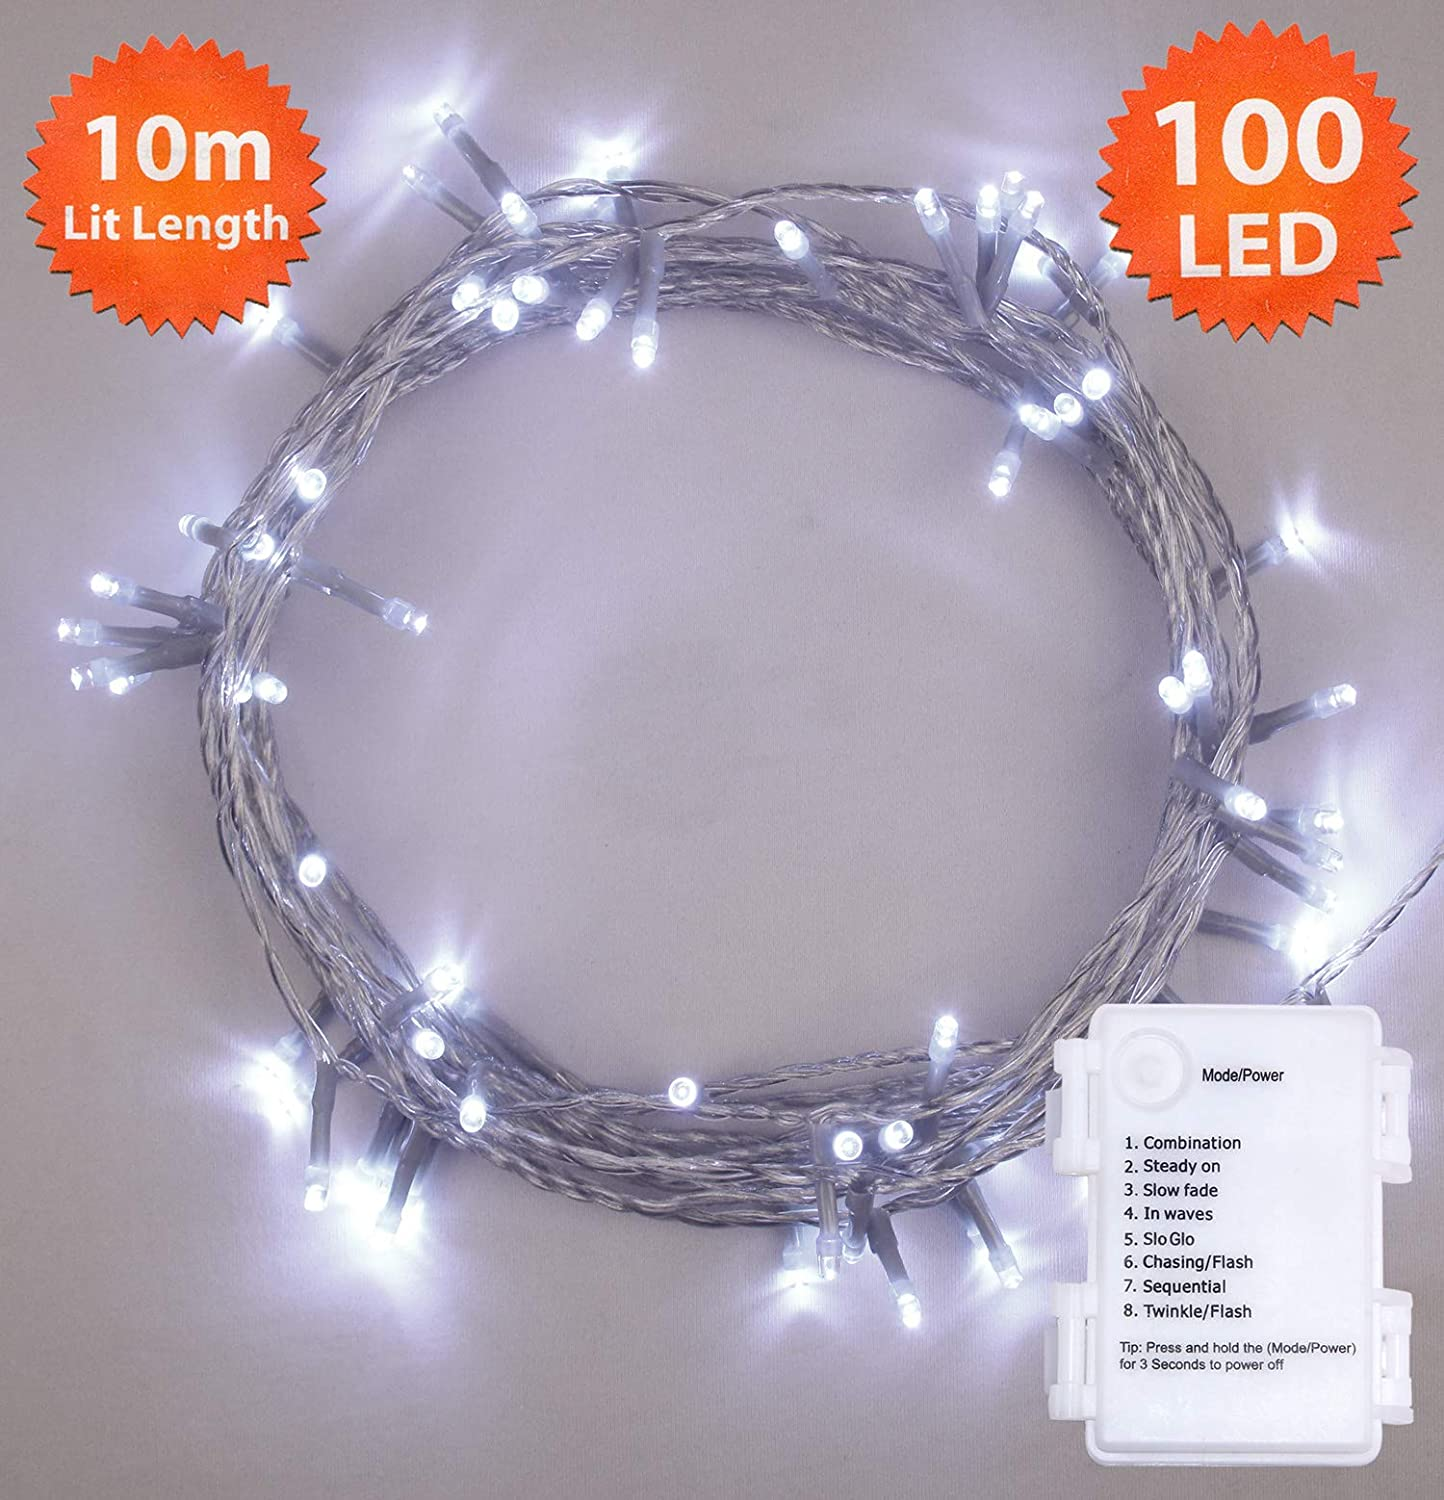 Fairy Lights 100 Led 10m Bright Cool White Timer Indoor Outdoor Christmas Running Chasing Light Circuit Electronic Projects Festive Wedding Bedroom Novelty Decorations Tree String Battery